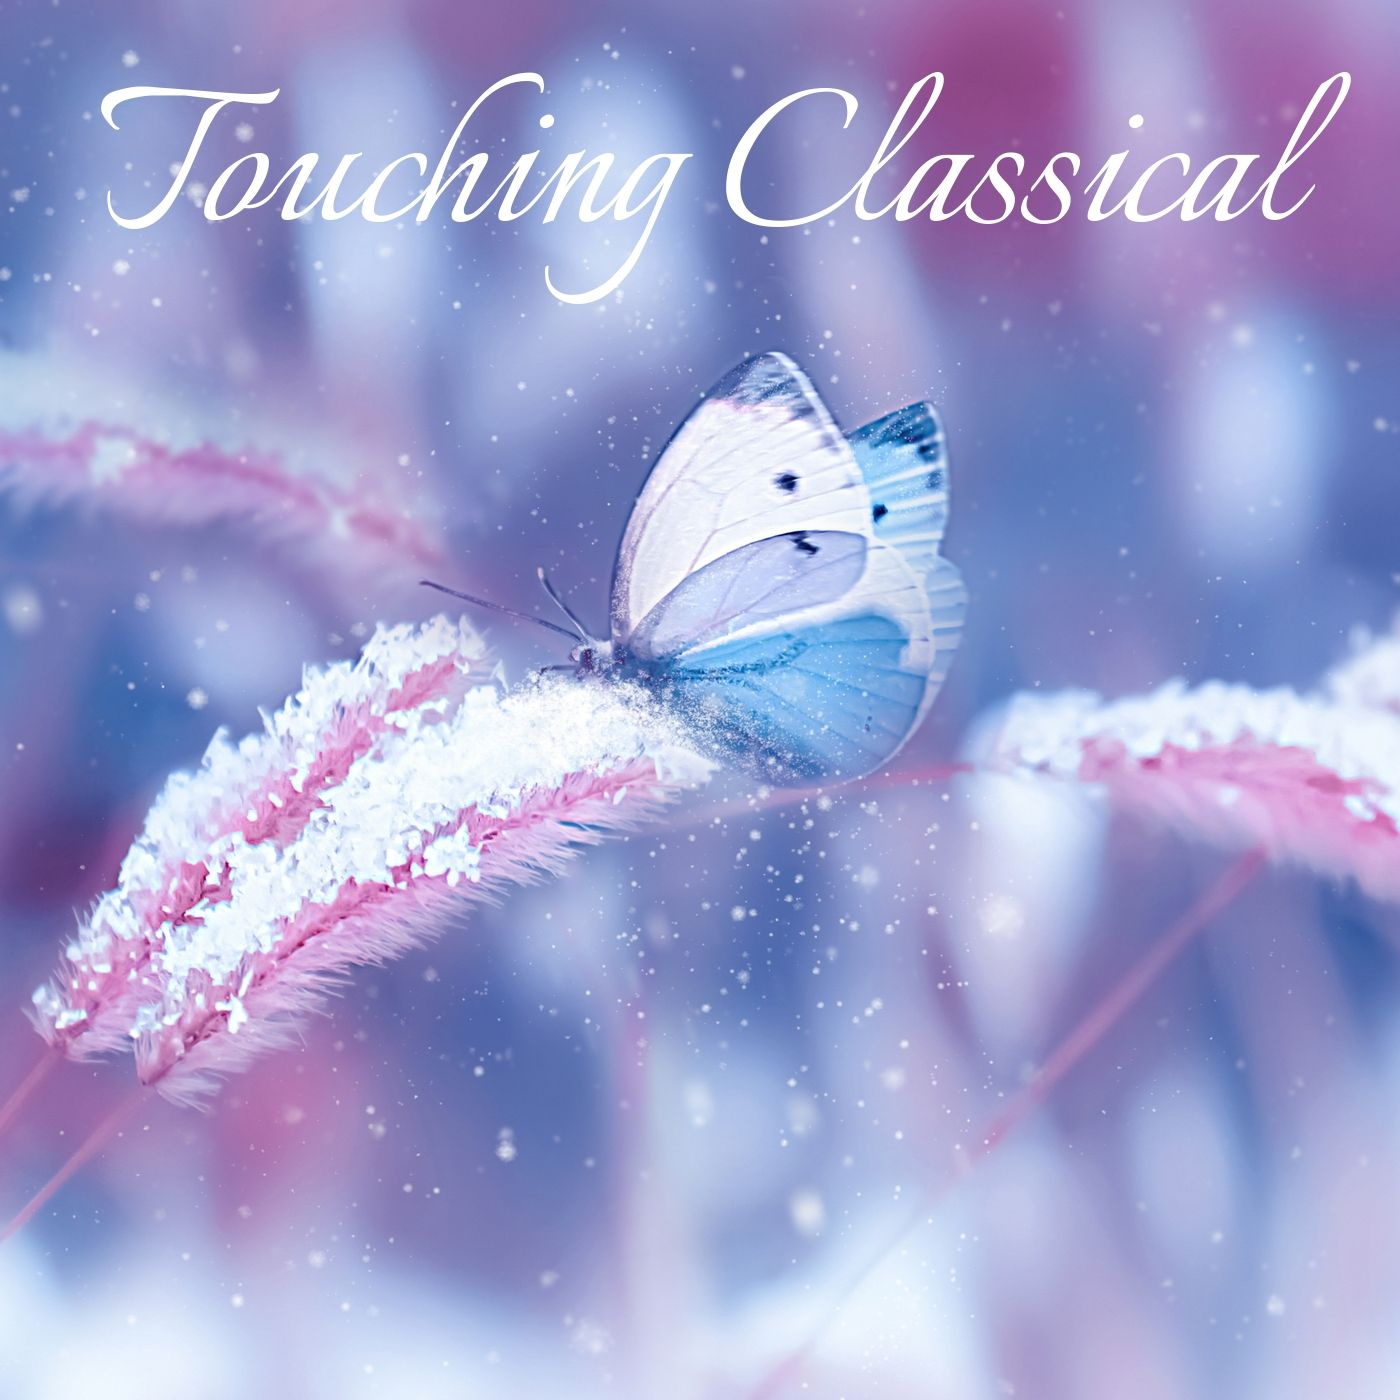 Emotional, Touching Classical Music